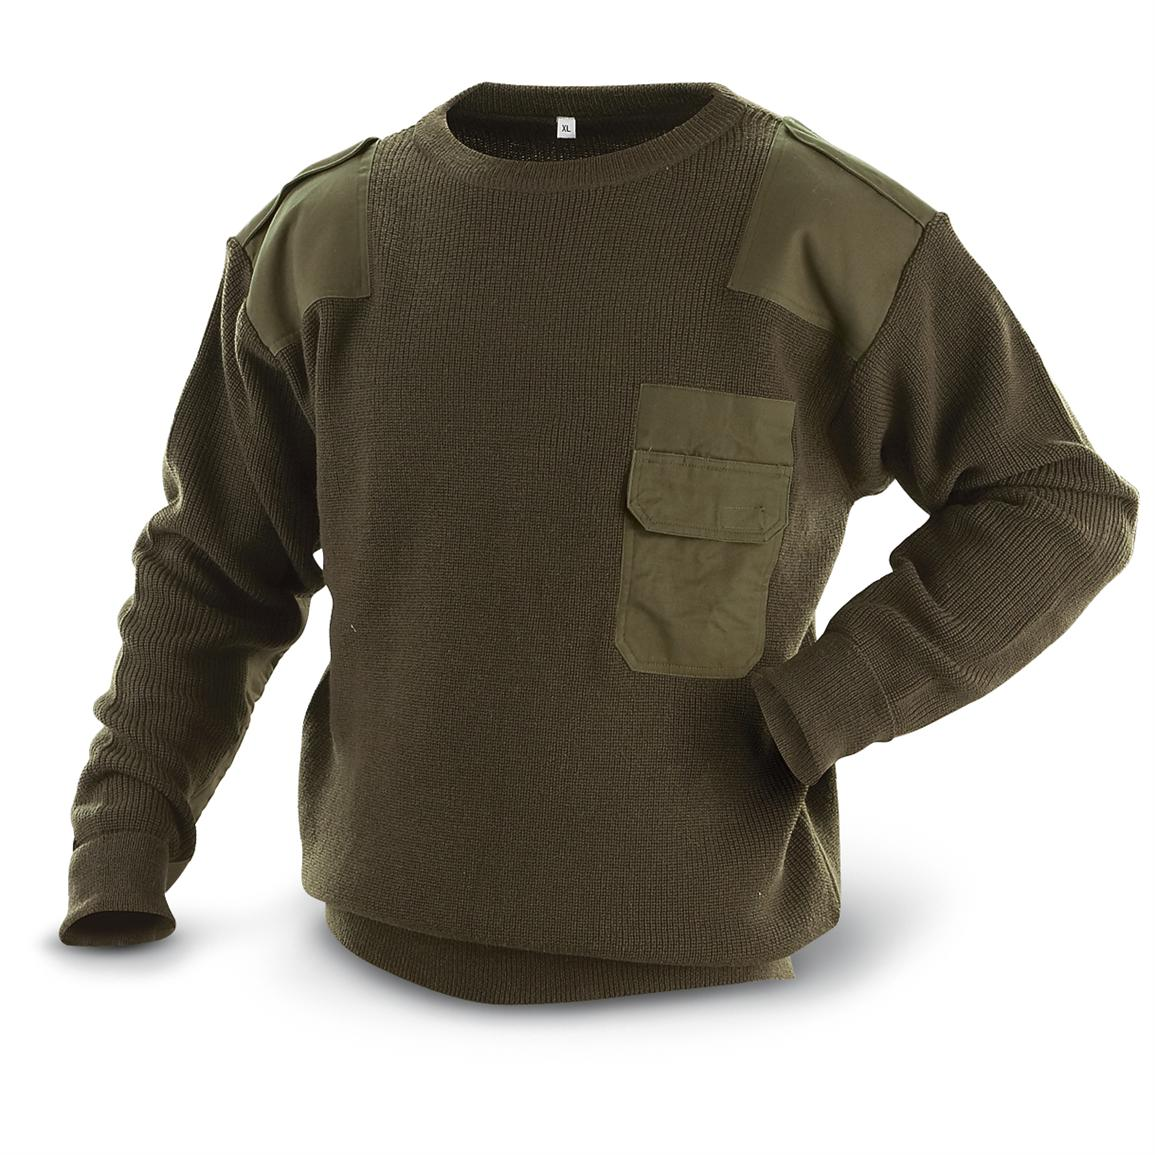 Military-style Commando Sweater, Olive Drab